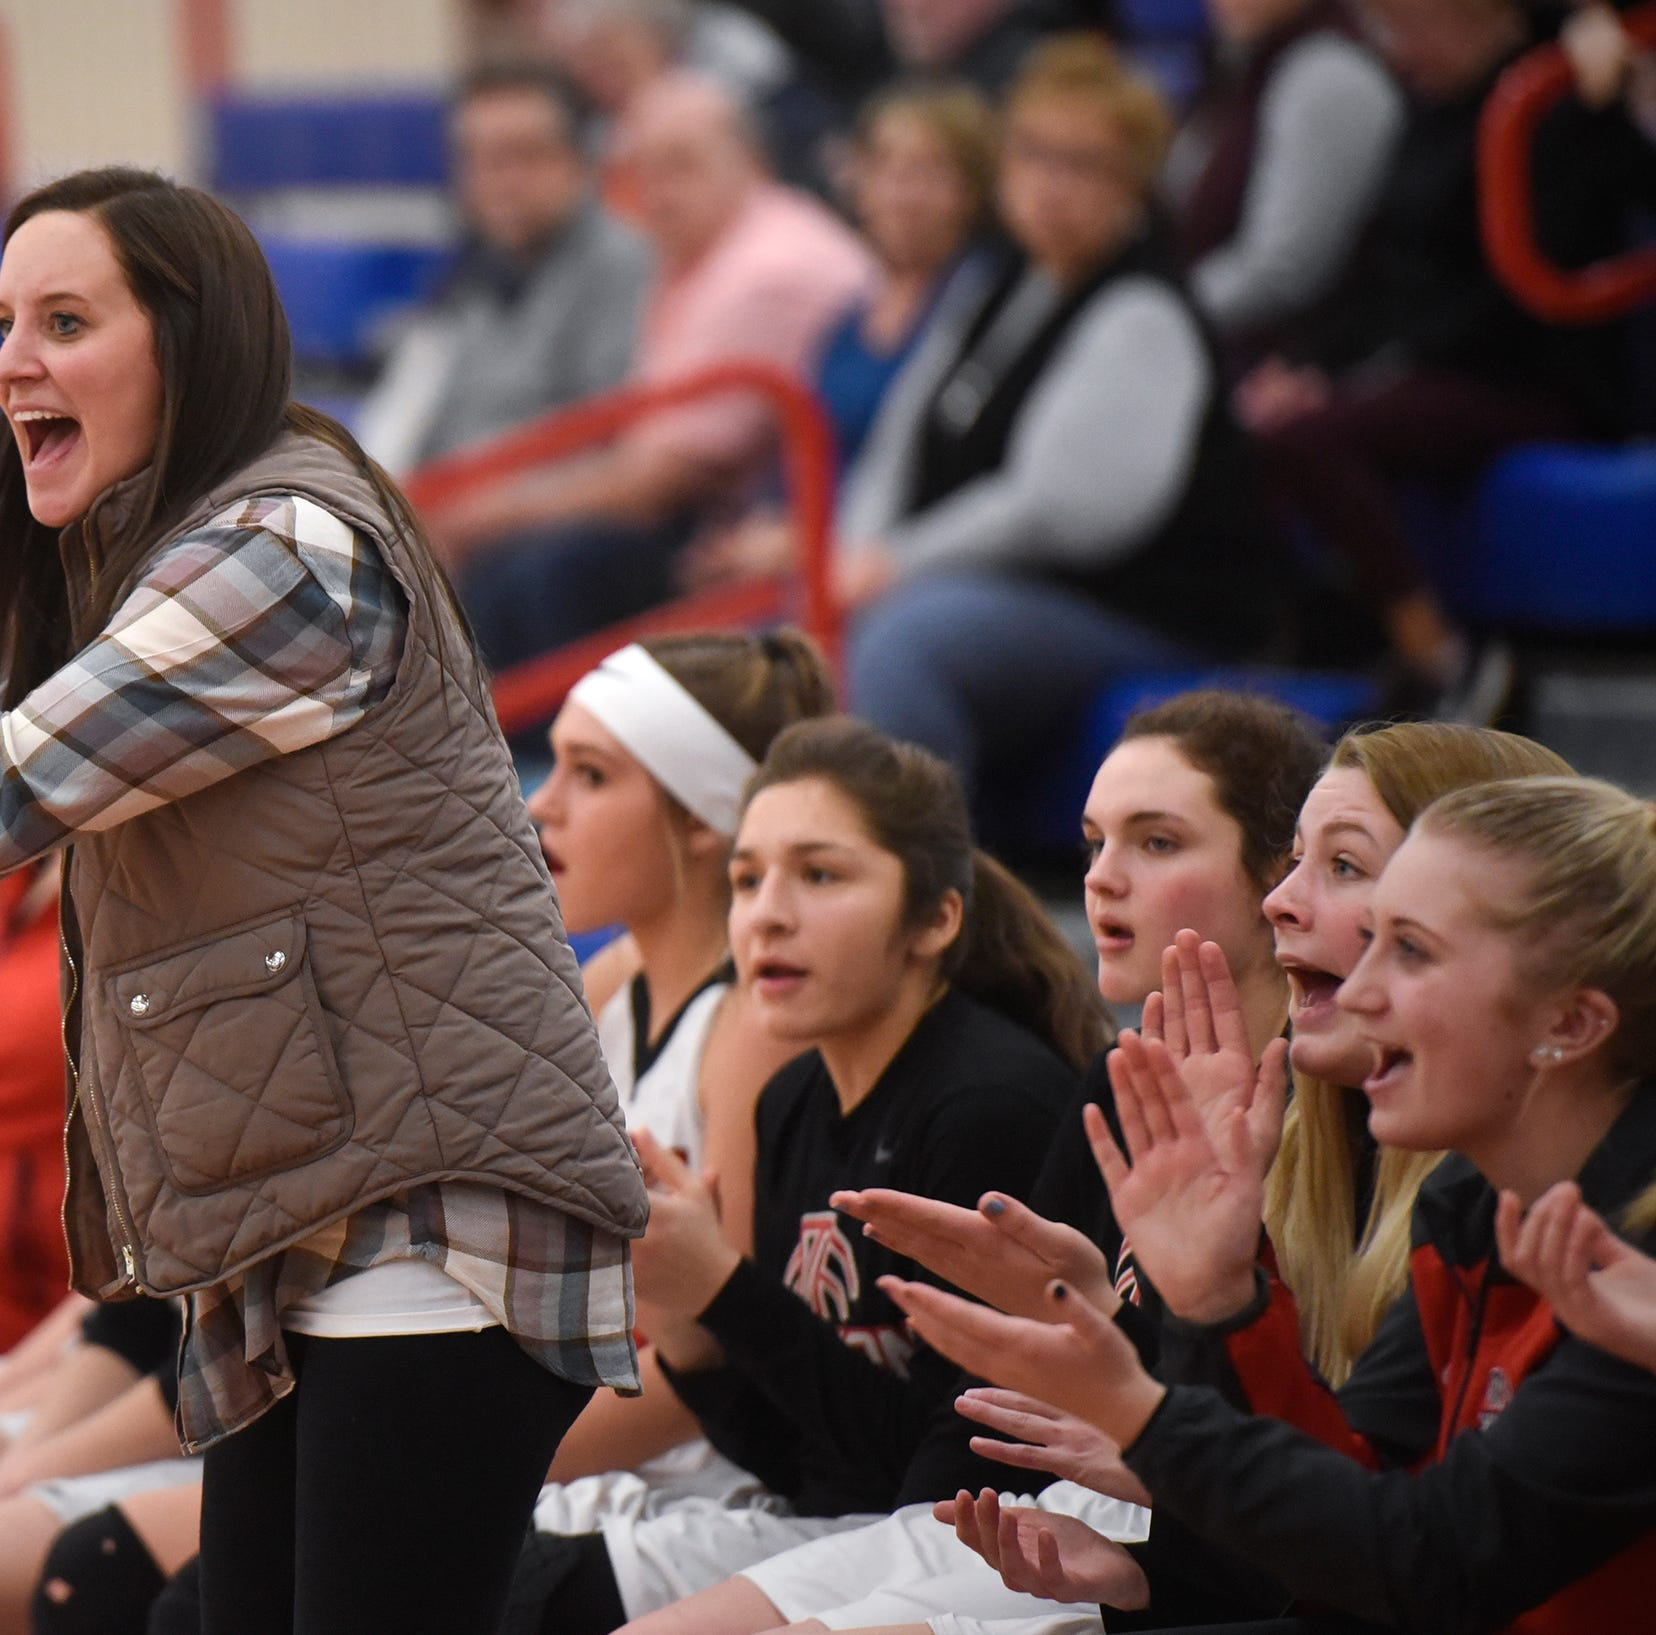 New ROCORI coach Valerie Fraley is enjoying the ride